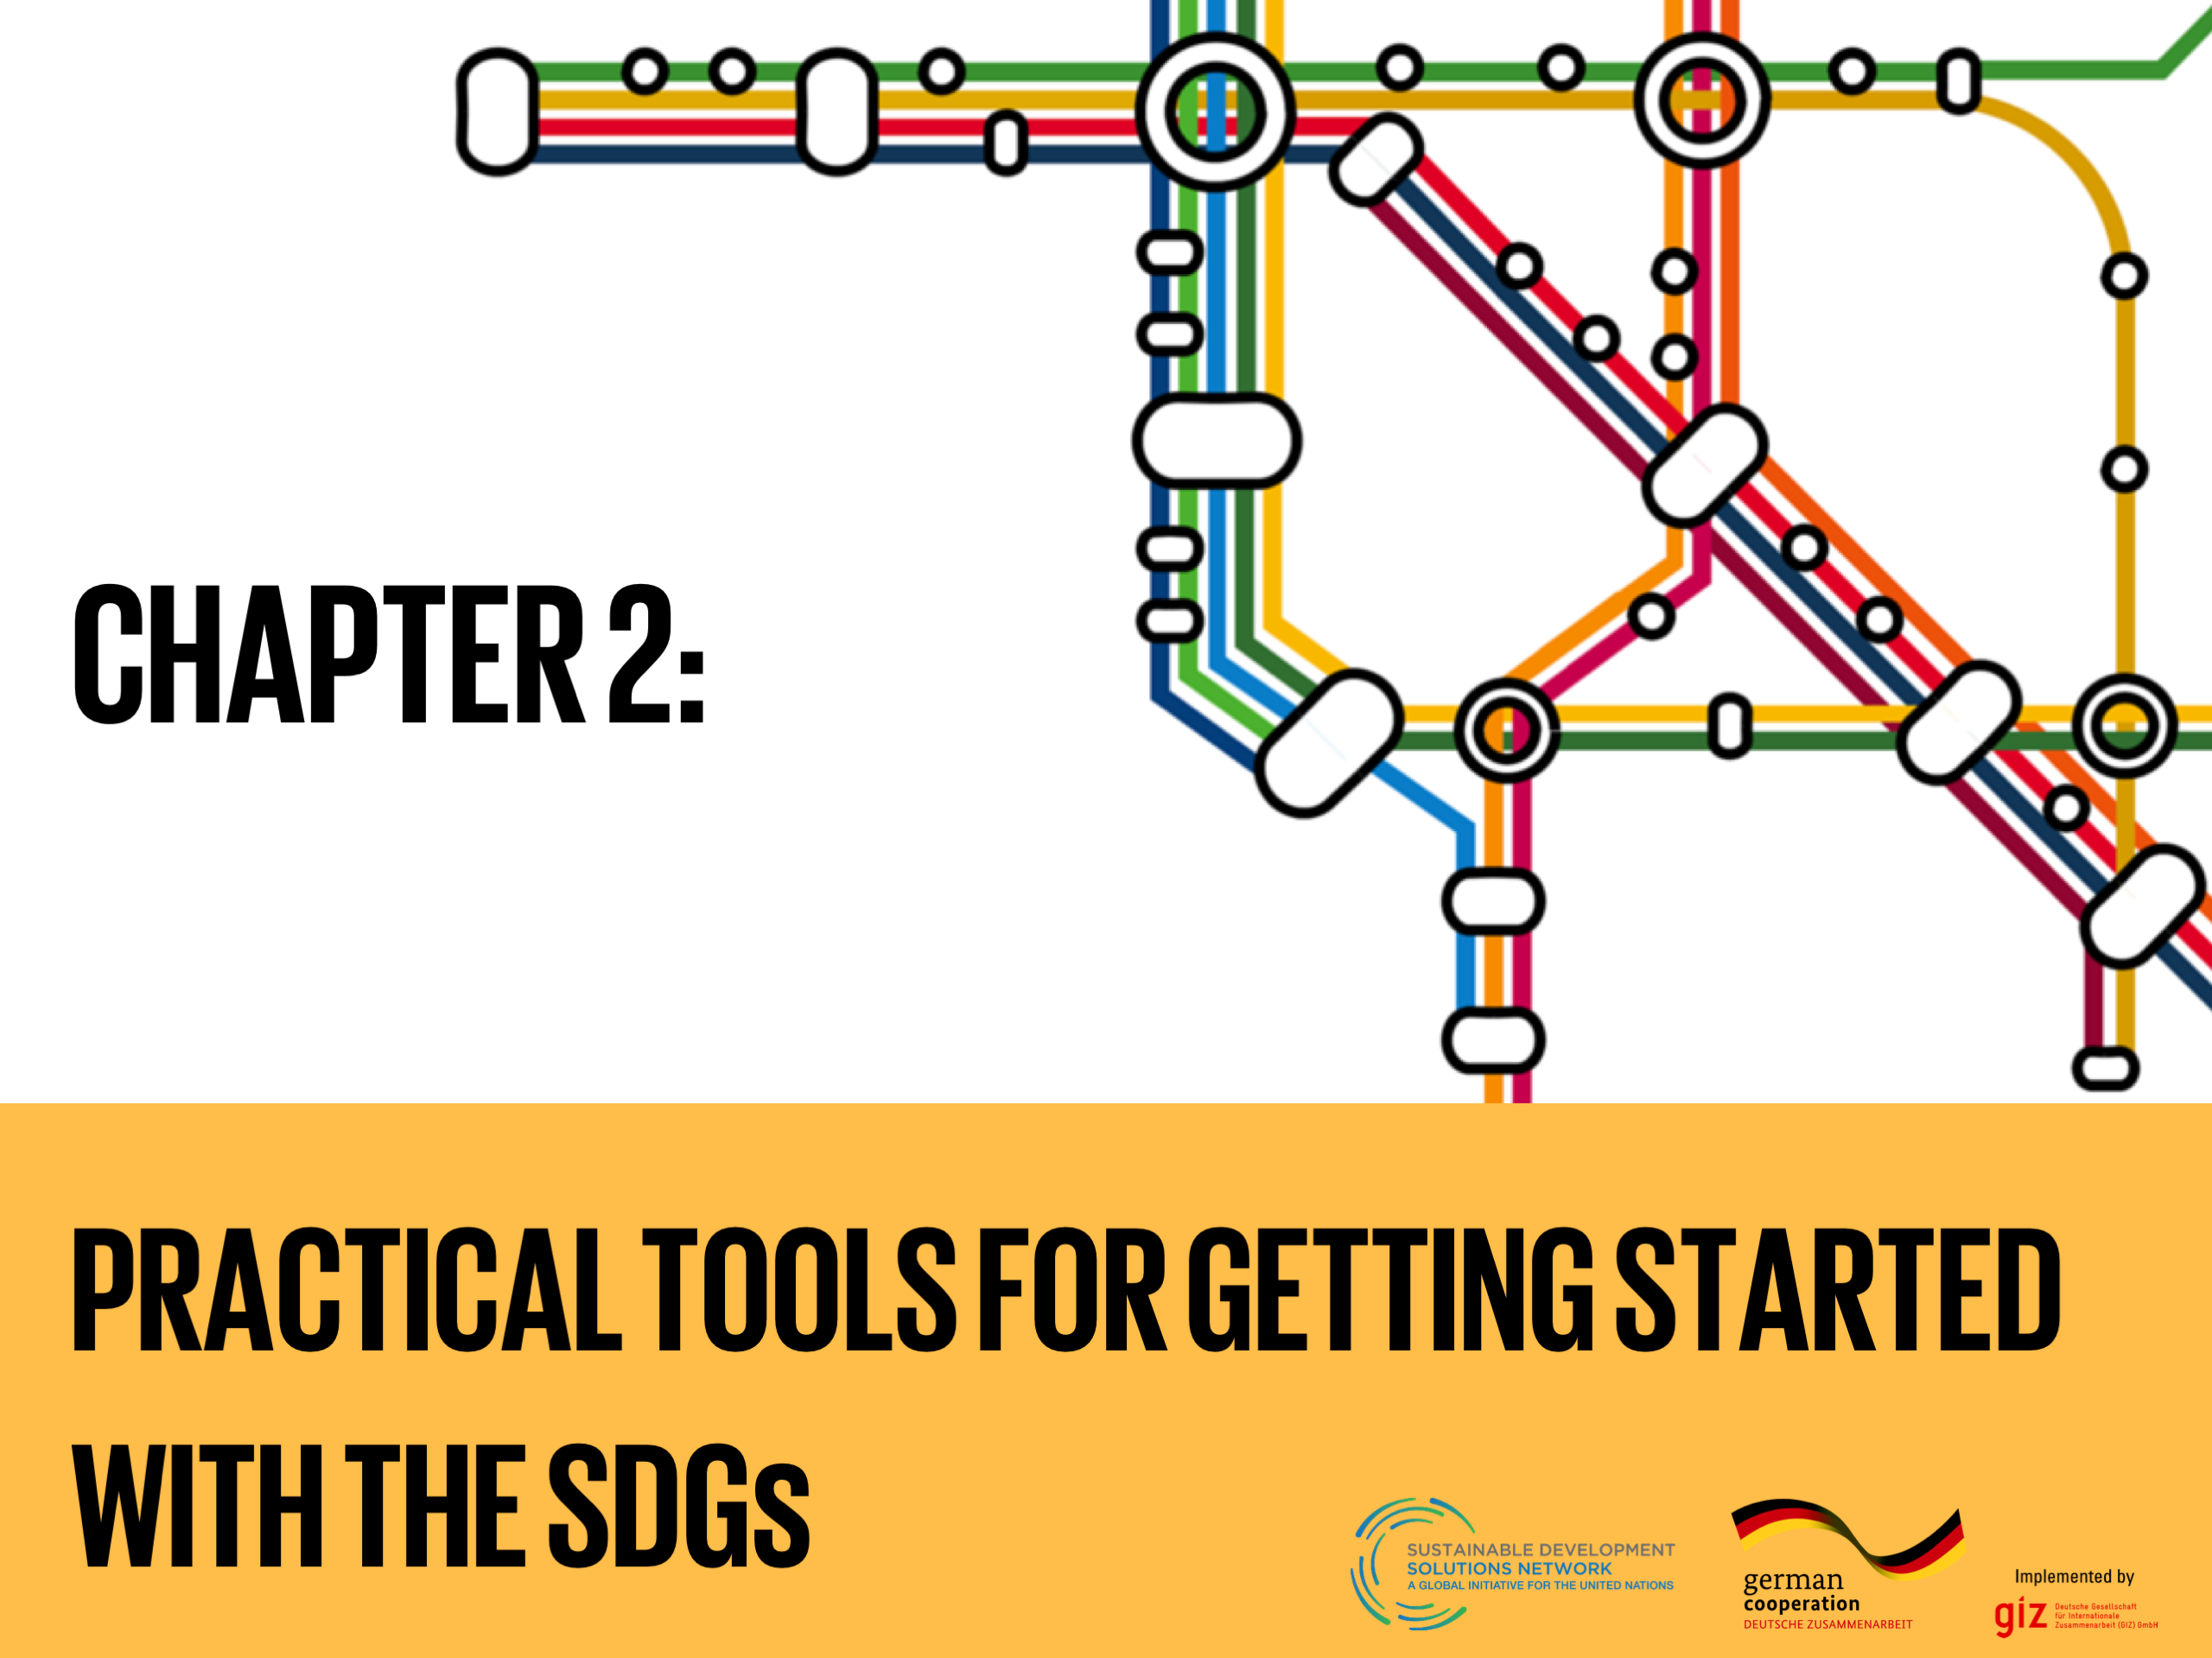 Subway Map Wall Art Endpoints.Chapter 2 Practical Tools For Getting Started With The Sdgs